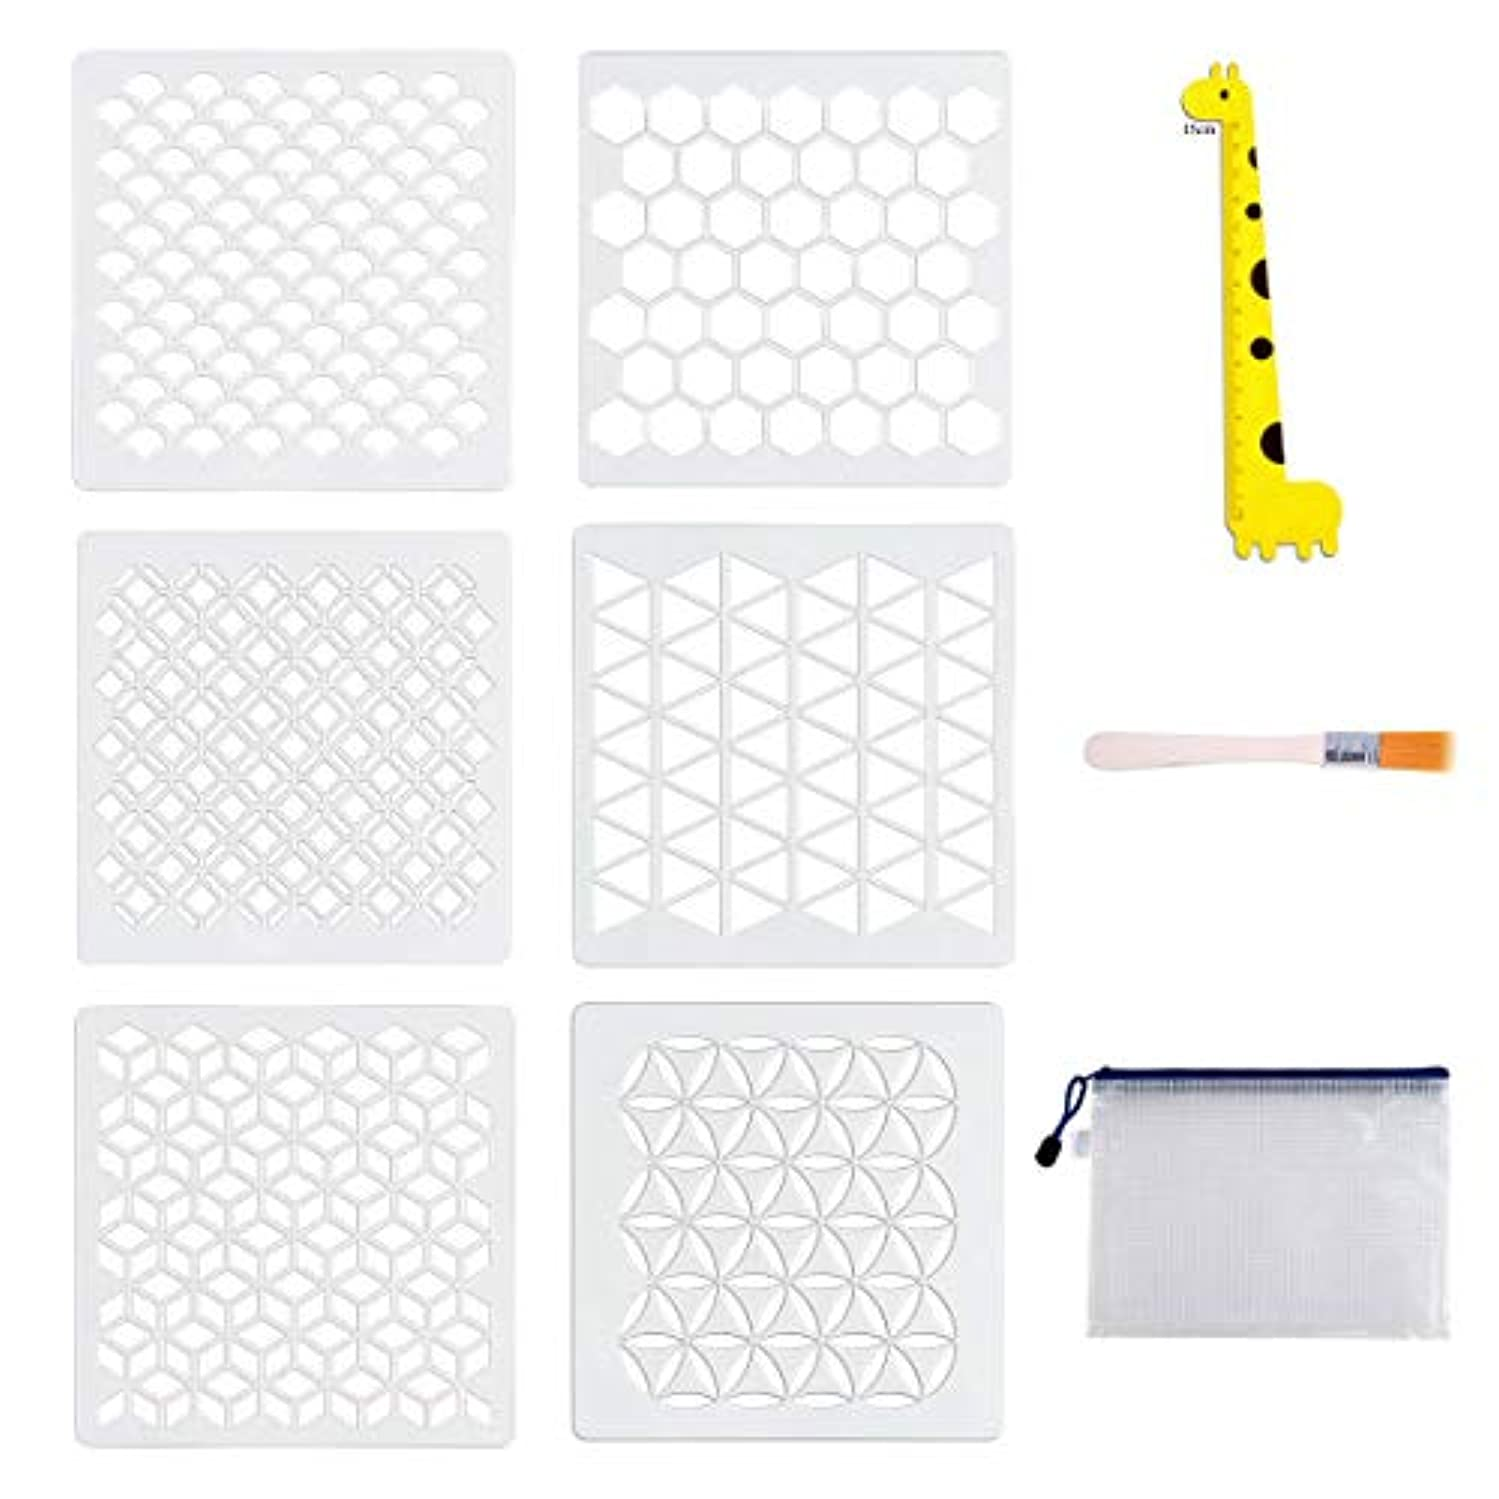 6 Set Geometric Stencils, Art Painting Templates for Scrapbooking Drawing Tracing DIY Furniture Wall Floor Decor with Art Brush/Storage Bag/Ruler, 7 x 7 Inch